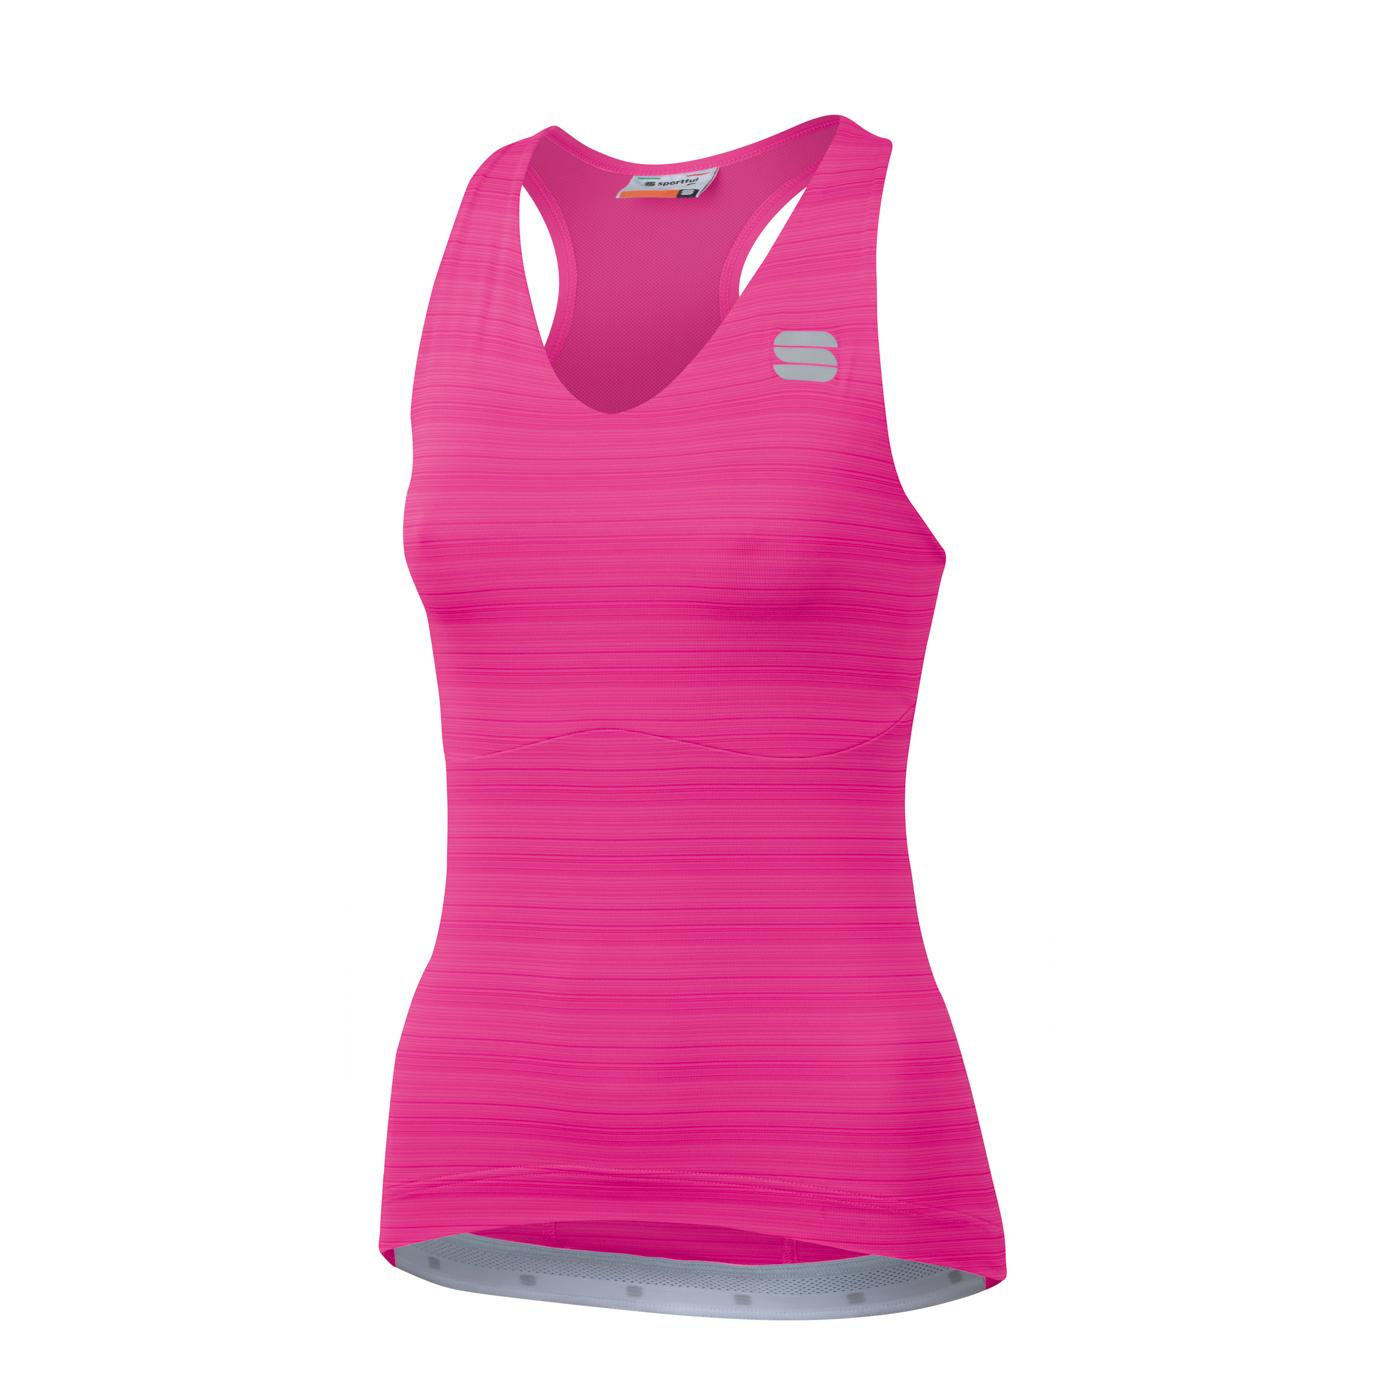 Sportful Fietsshirt Mouwloos voor Dames Roze - SF Kelly W Top-Bubble Gum